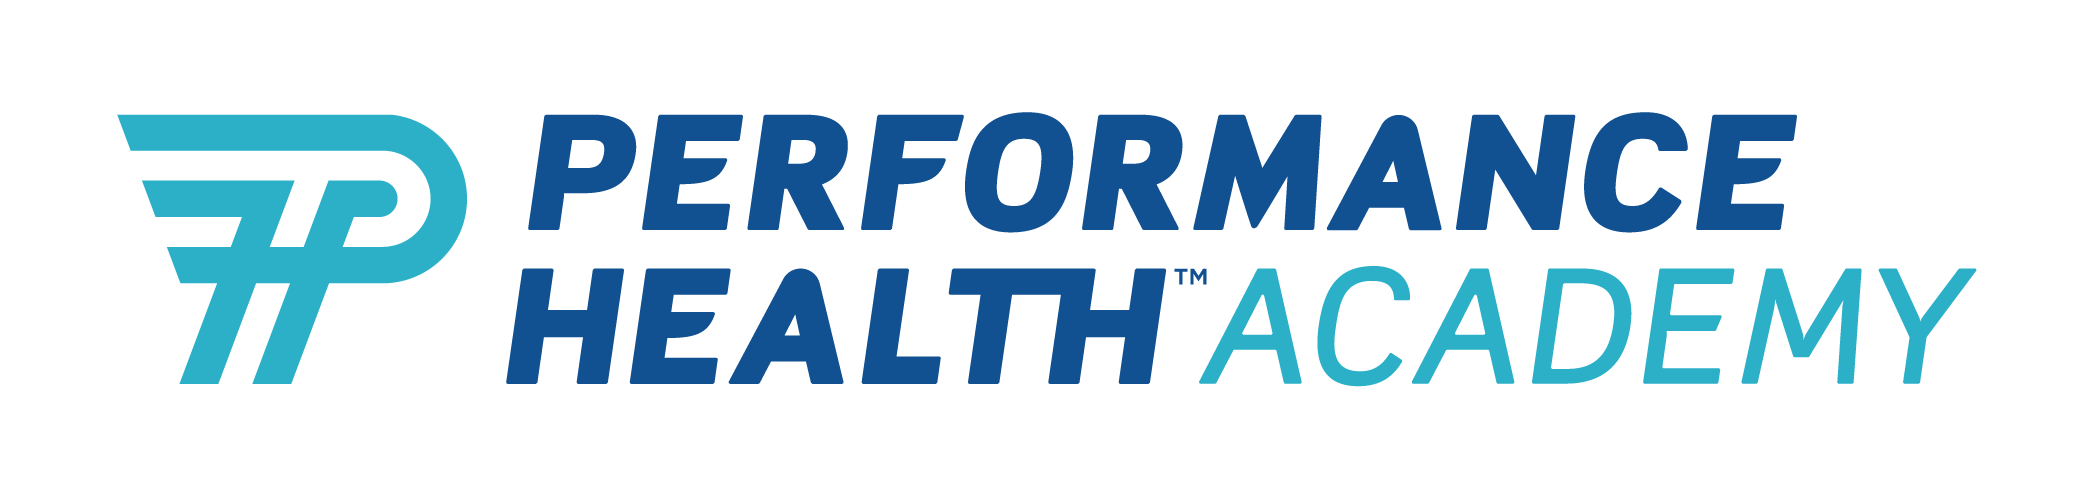 7e021ebab Article Series - Performance Health Academy